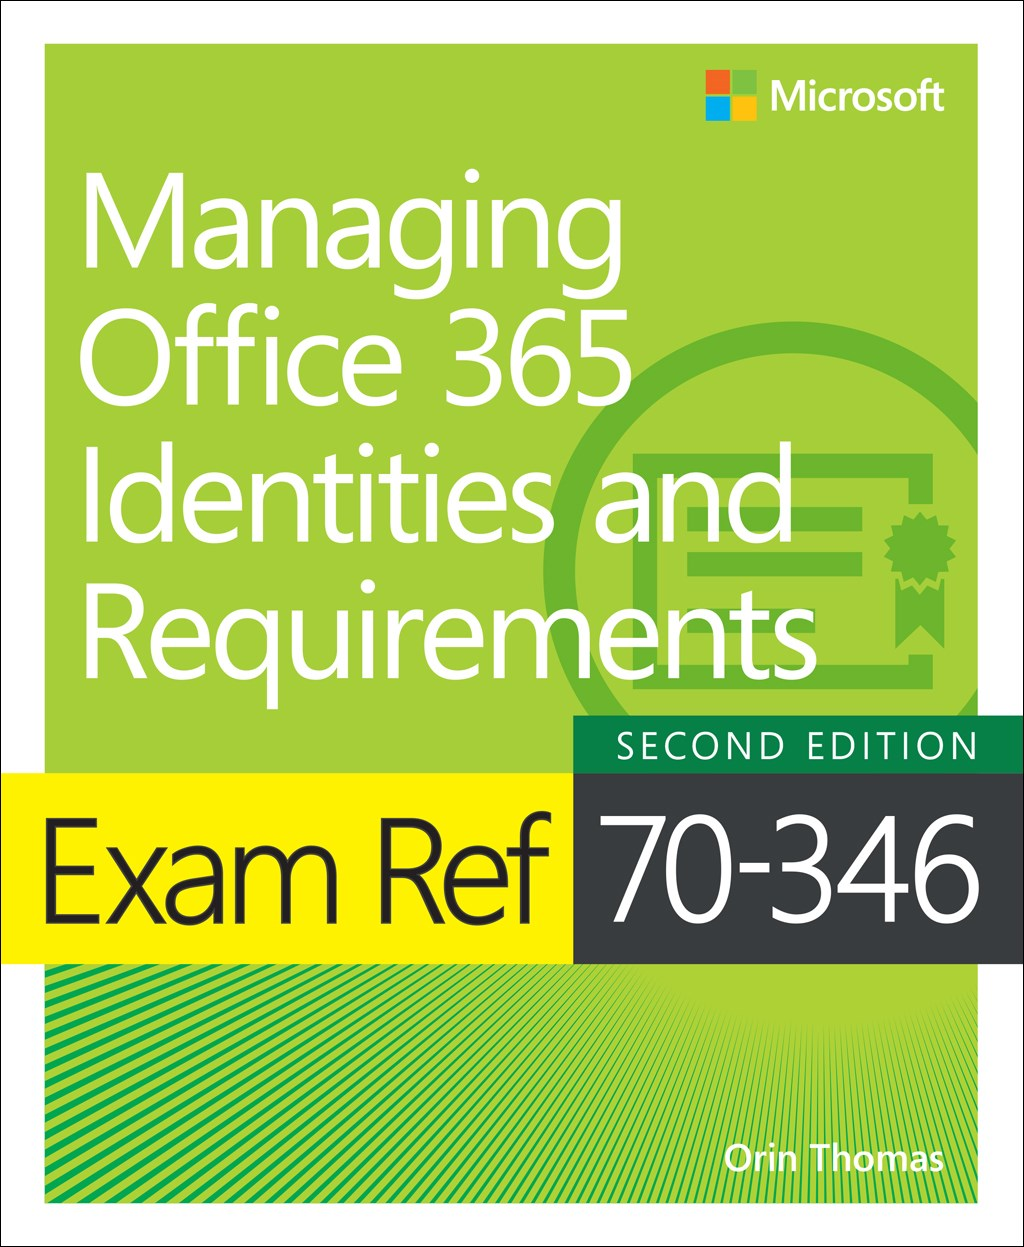 Exam Ref 70-346 Managing Office 365 Identities and Requirements, 2nd Edition